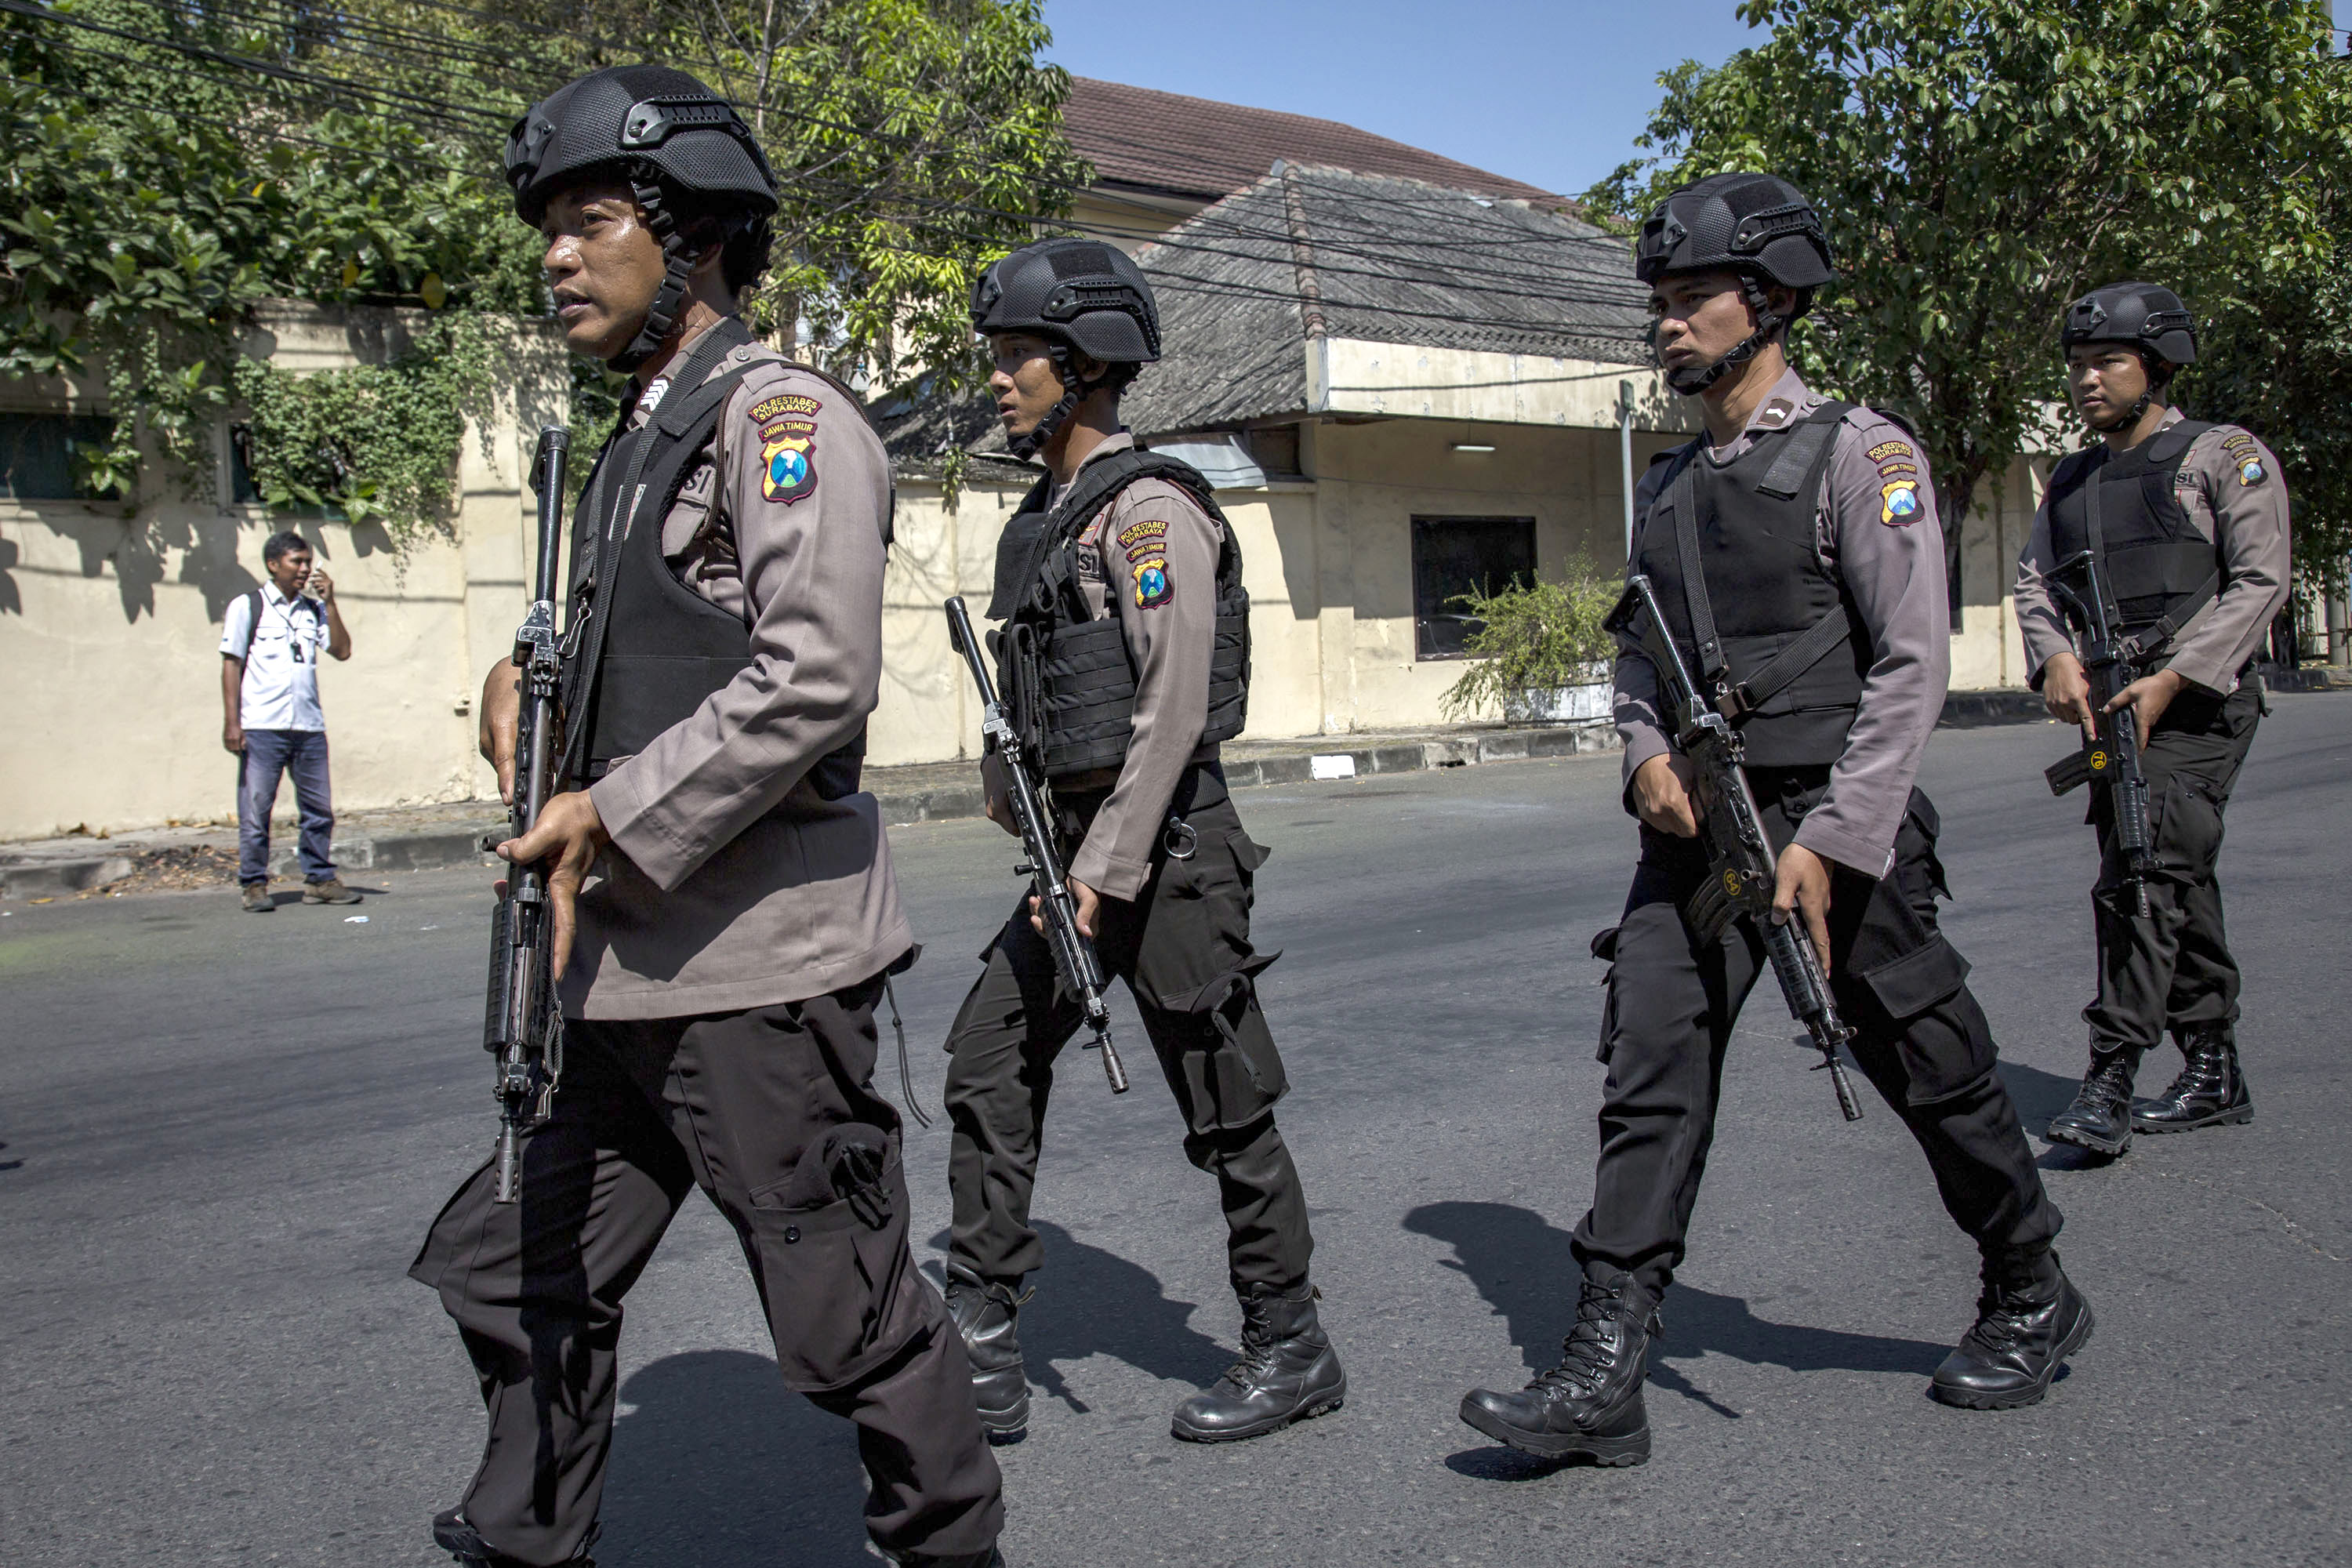 Indonesian police stand guard outside the Surabaya police station following another explosion on May 14, 2018 in Surabaya, Indonesia.